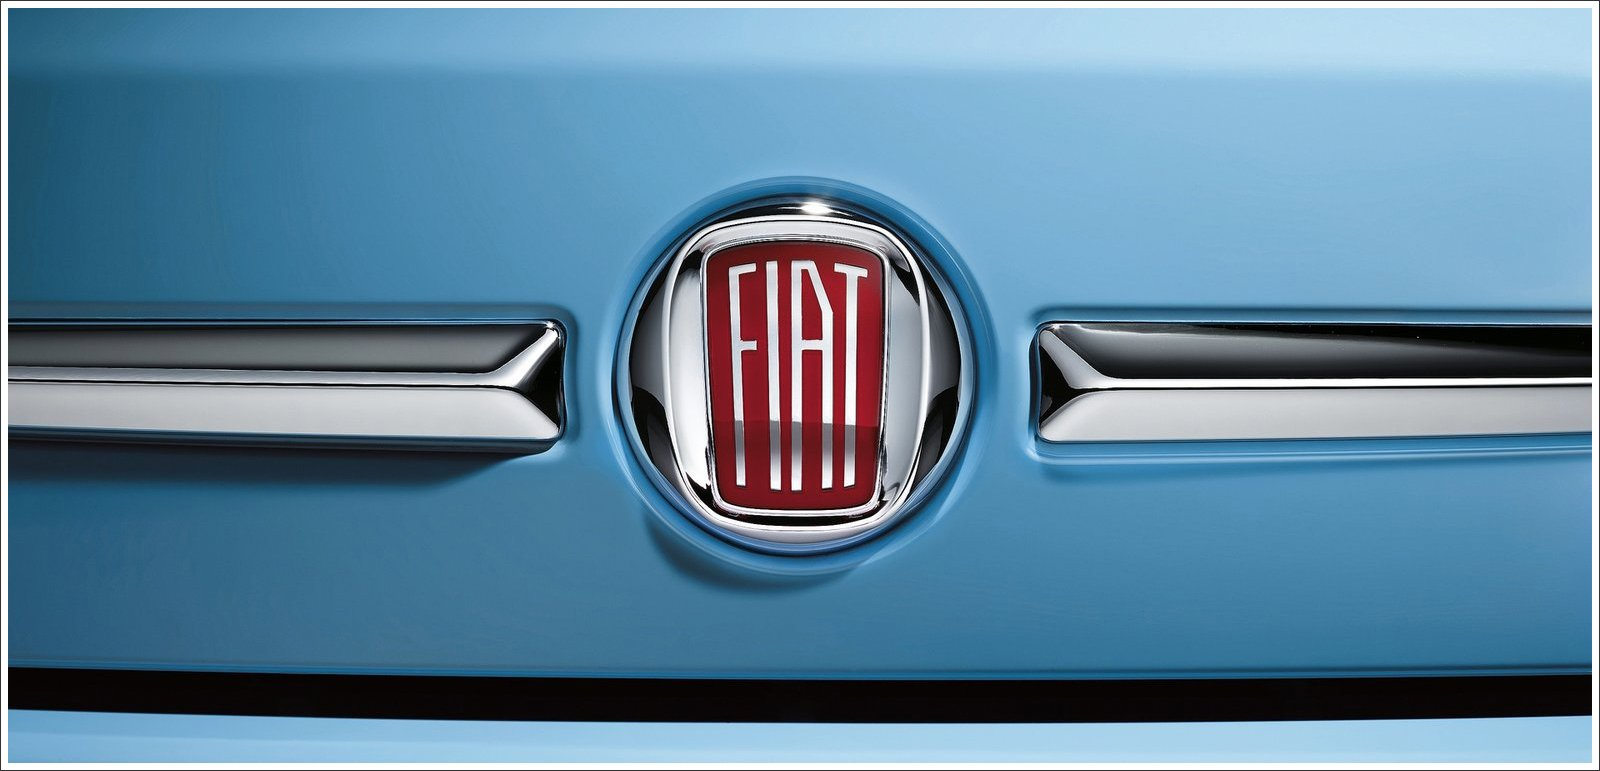 fiat logo meaning and history symbol fiat world cars brands. Black Bedroom Furniture Sets. Home Design Ideas